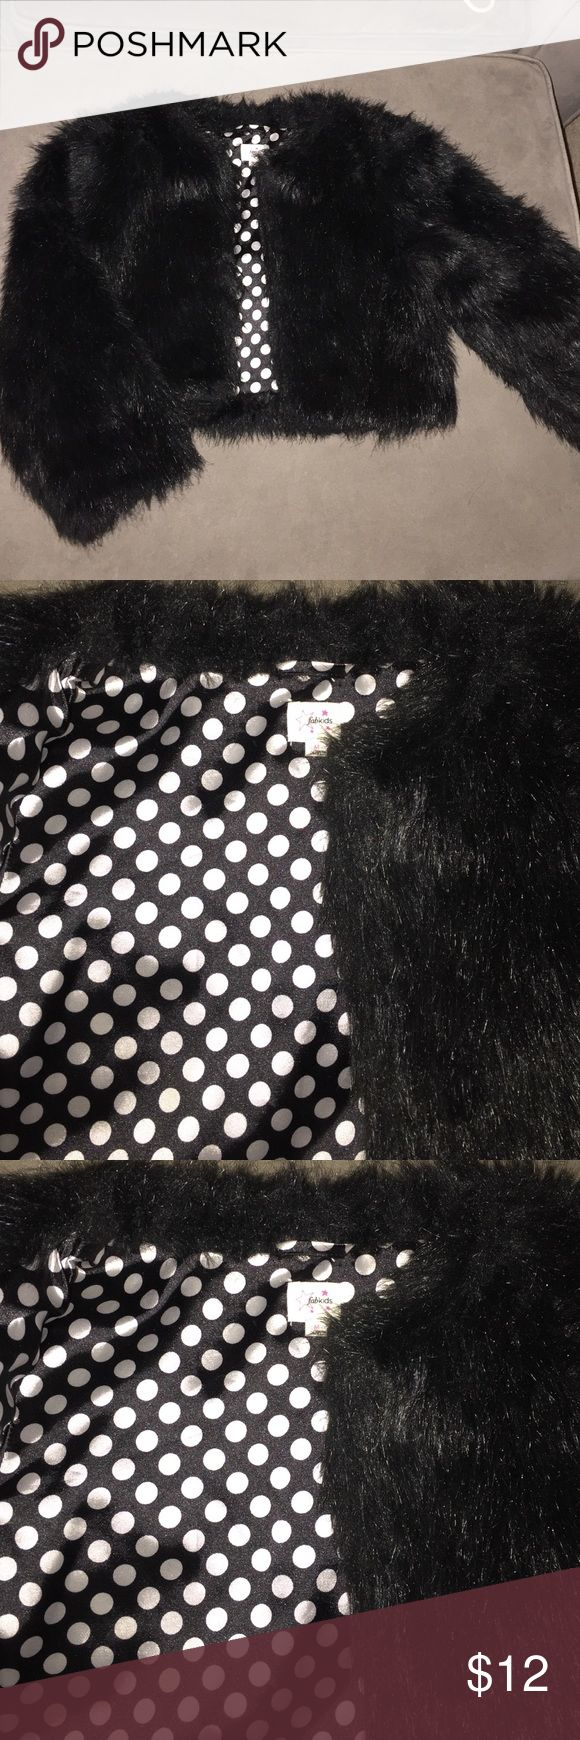 Girls Faux fur jacket Black faux fur jacket with satin lining Fab Kids Jackets & Coats